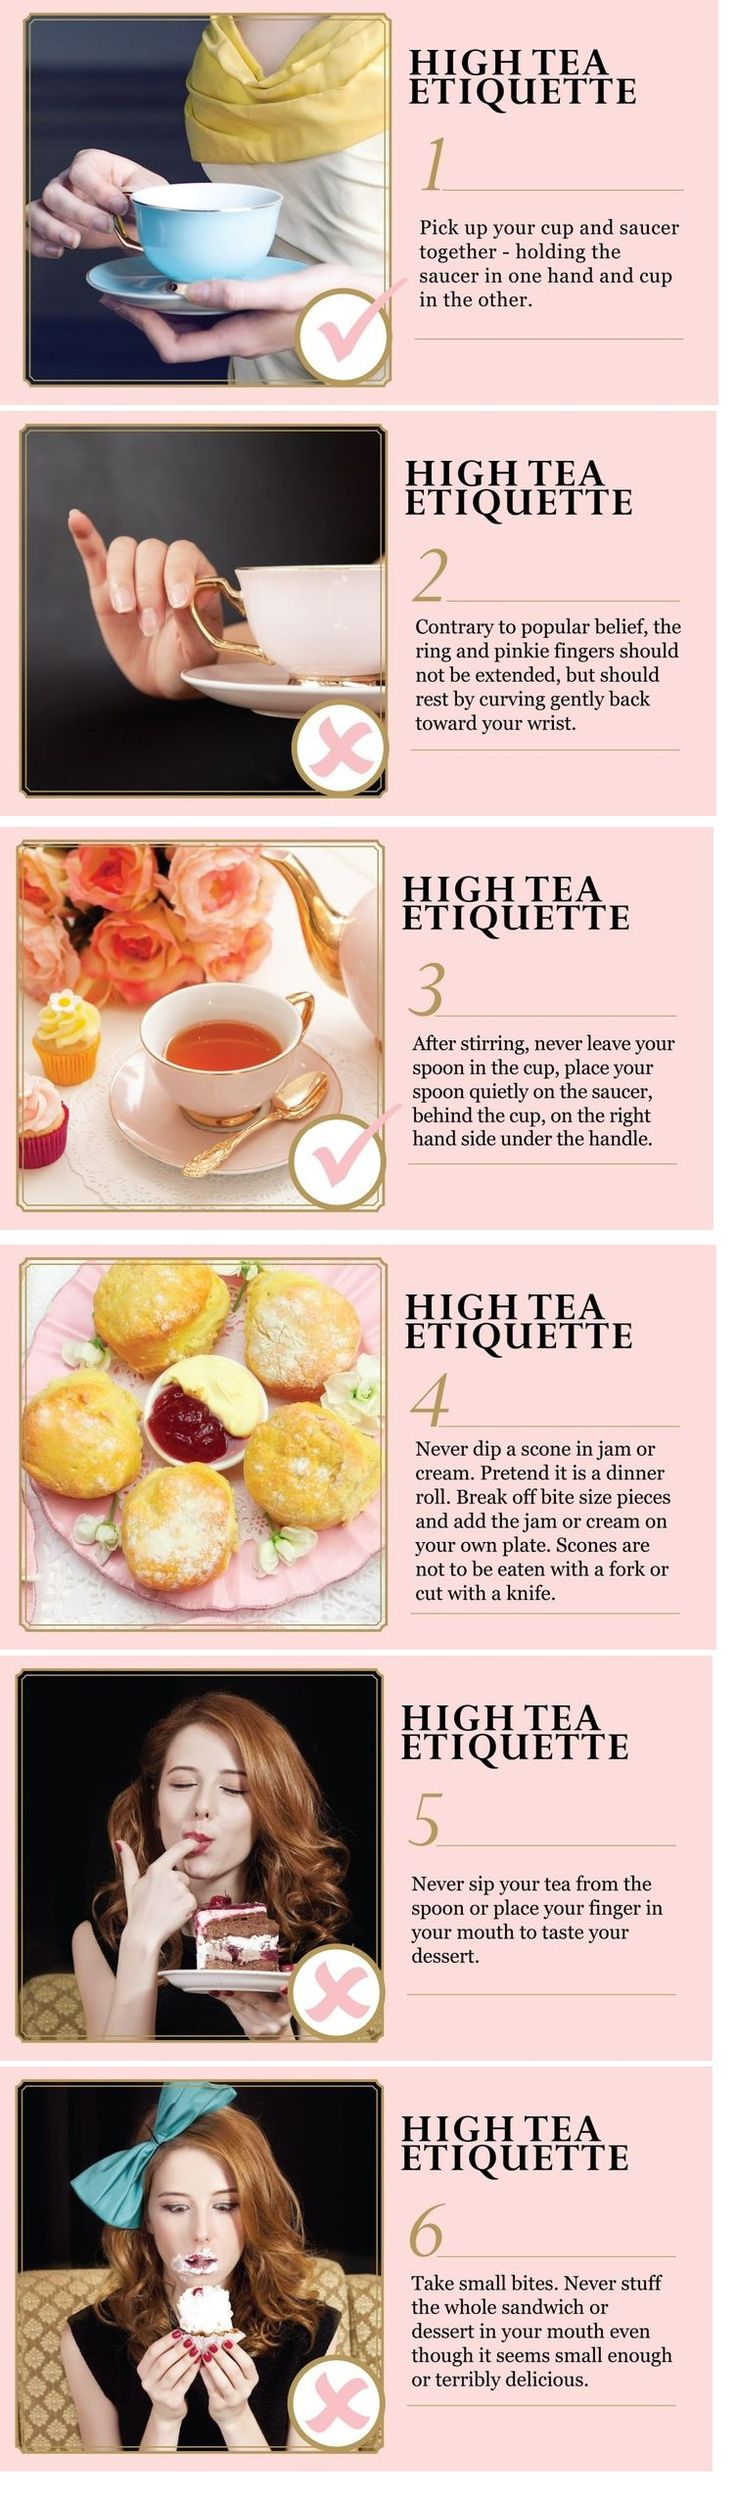 High Tea Manners